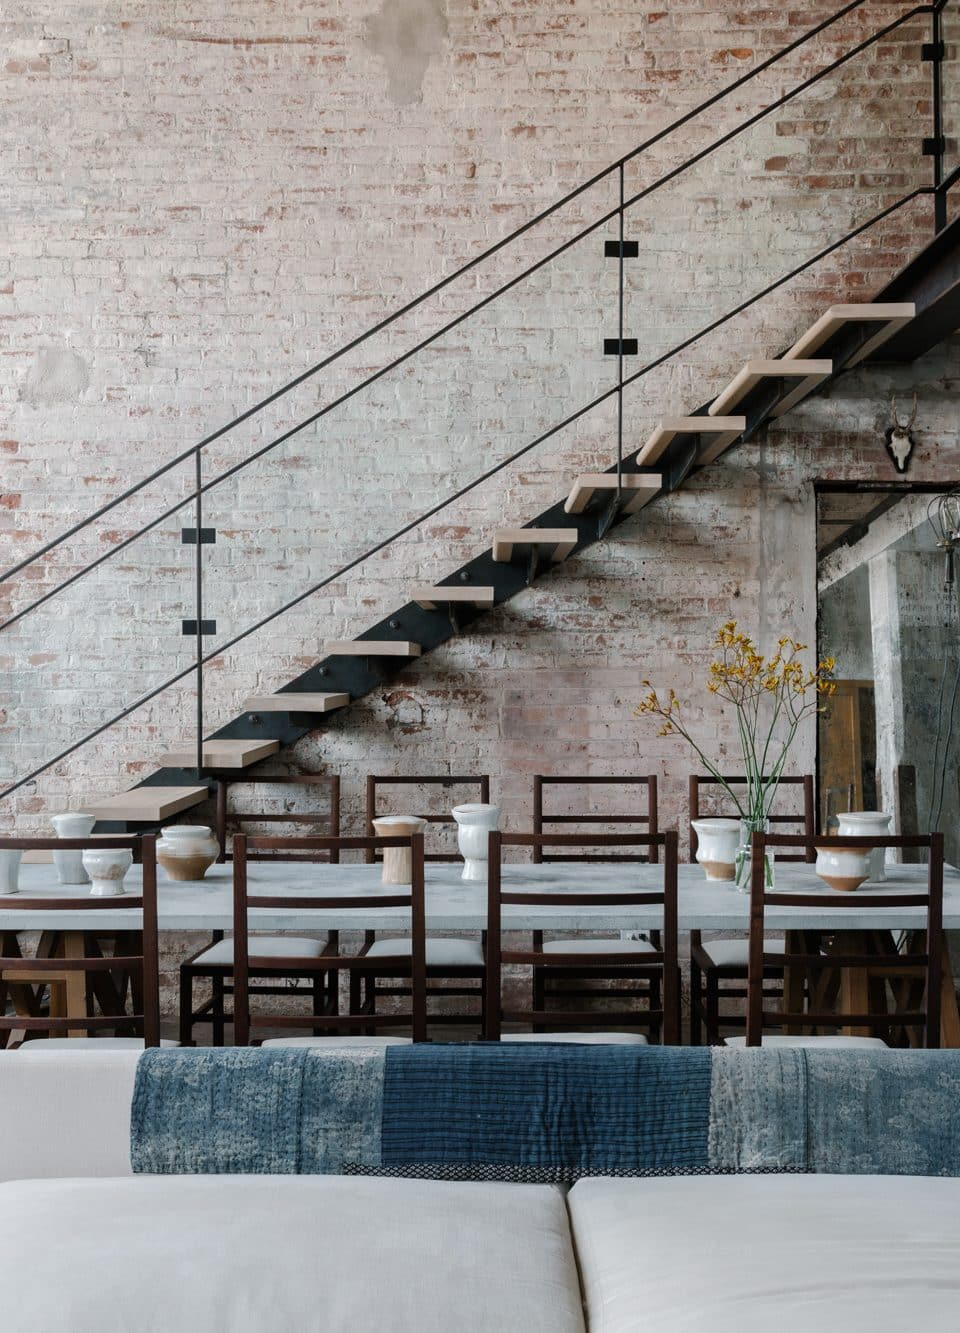 Jae Joo Mixes Old and New Furniture for Lived-In Comfort and Charm